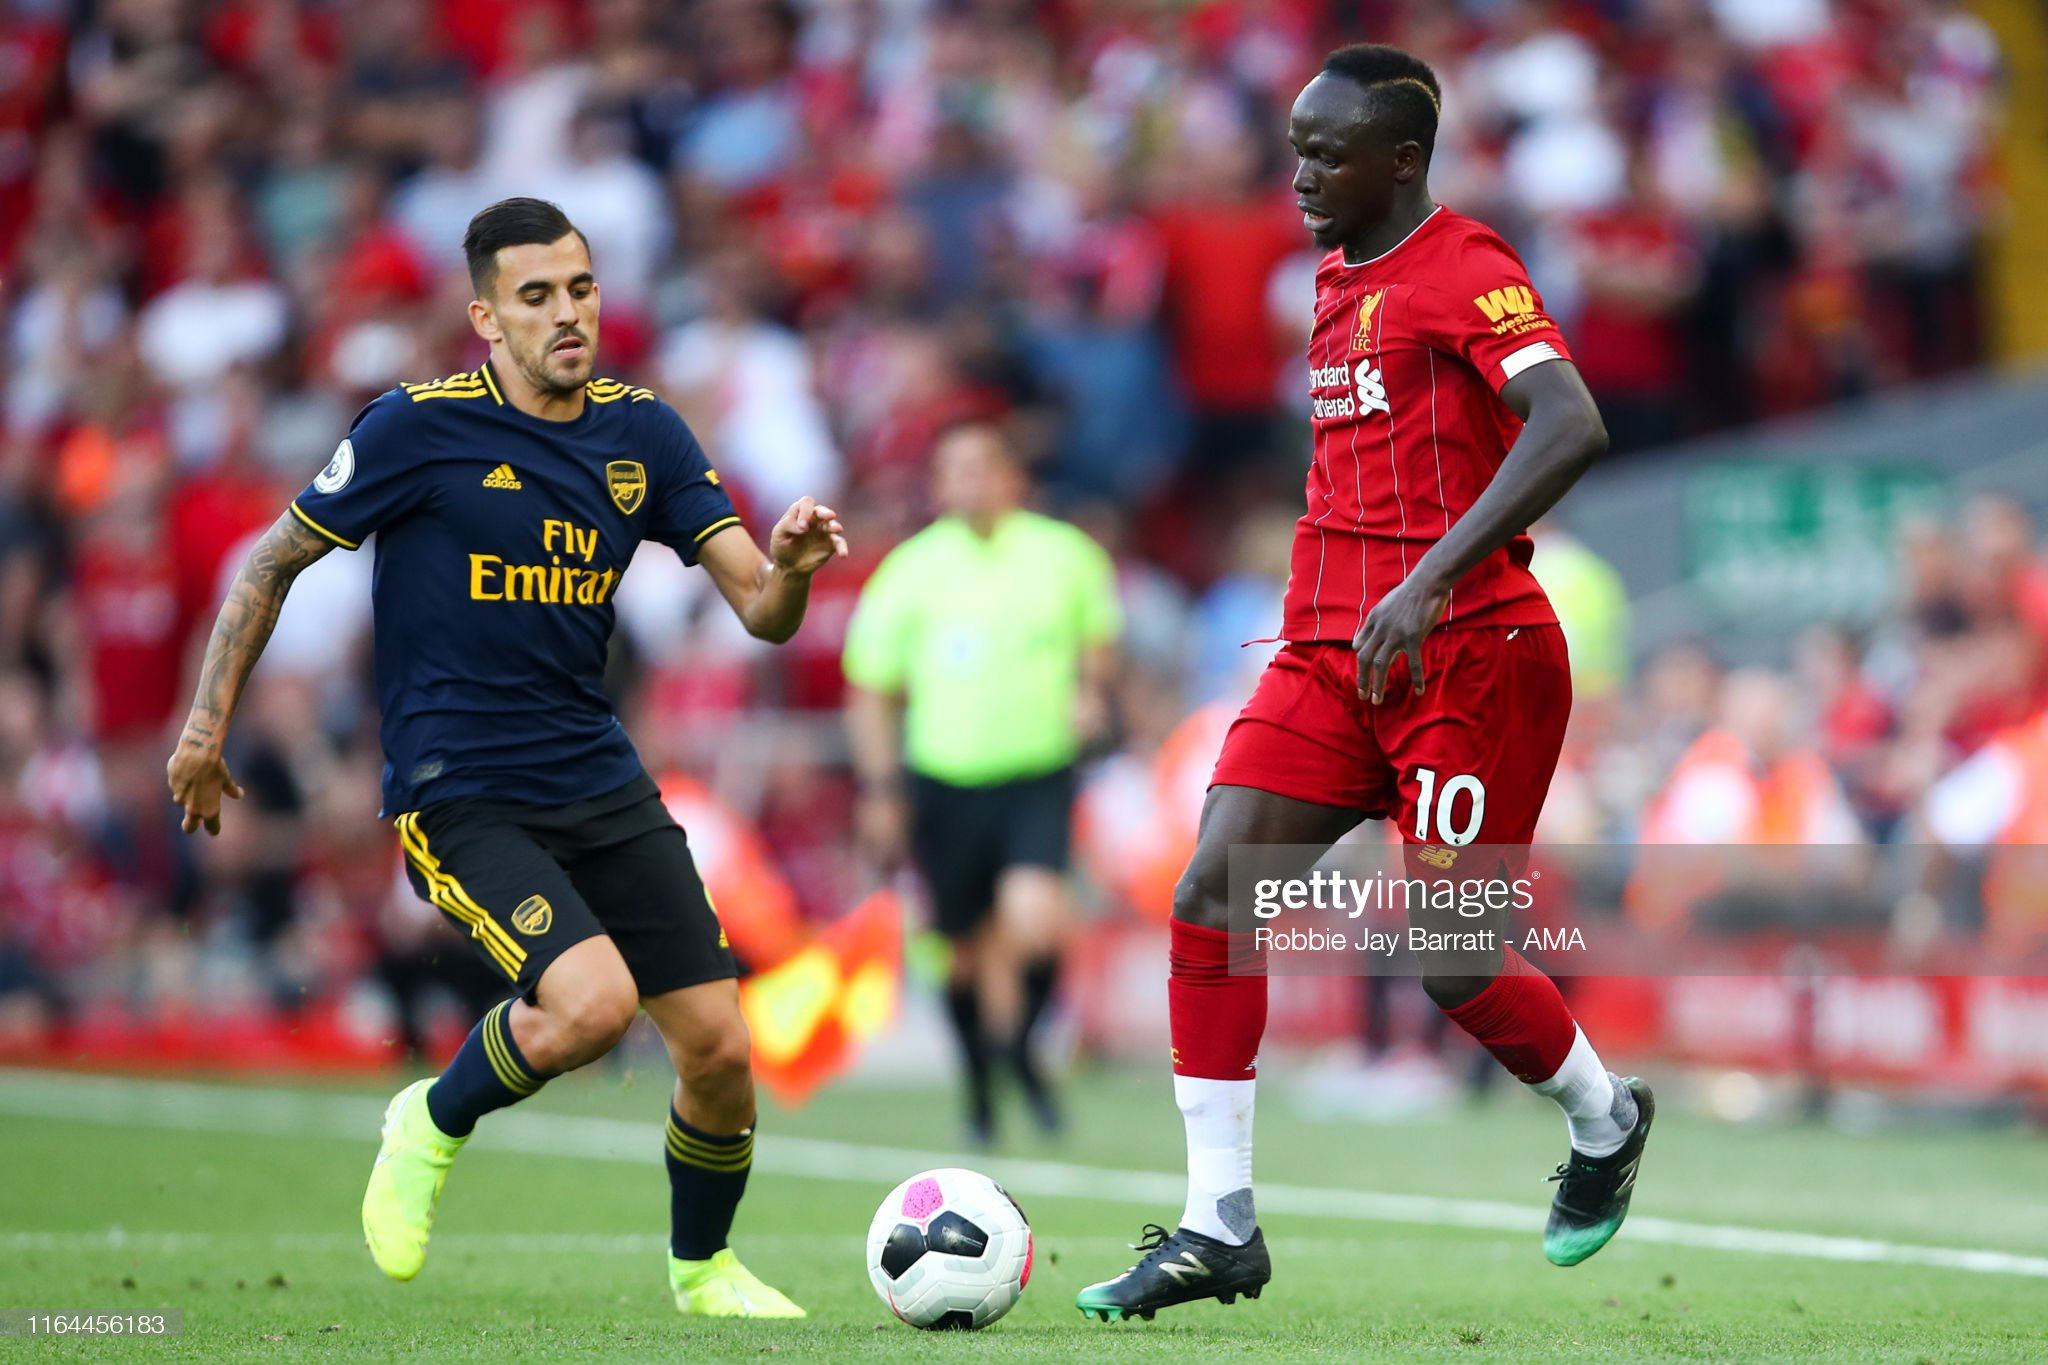 Liverpool v Arsenal preview, prediction and odds